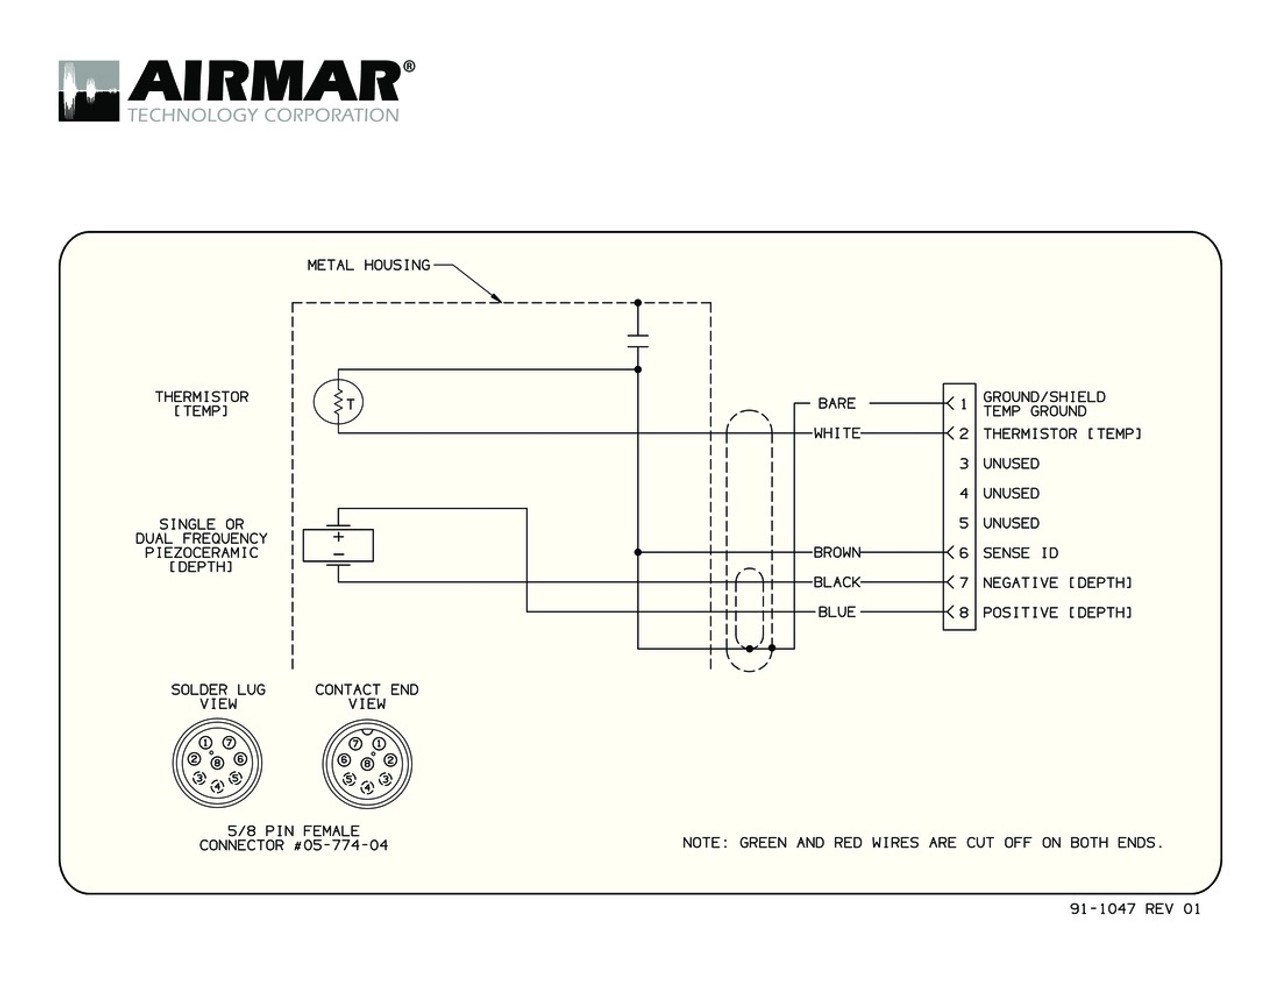 medium resolution of depth temperature b117 transducers with garmin 8 pin connector airmar wiring diagram